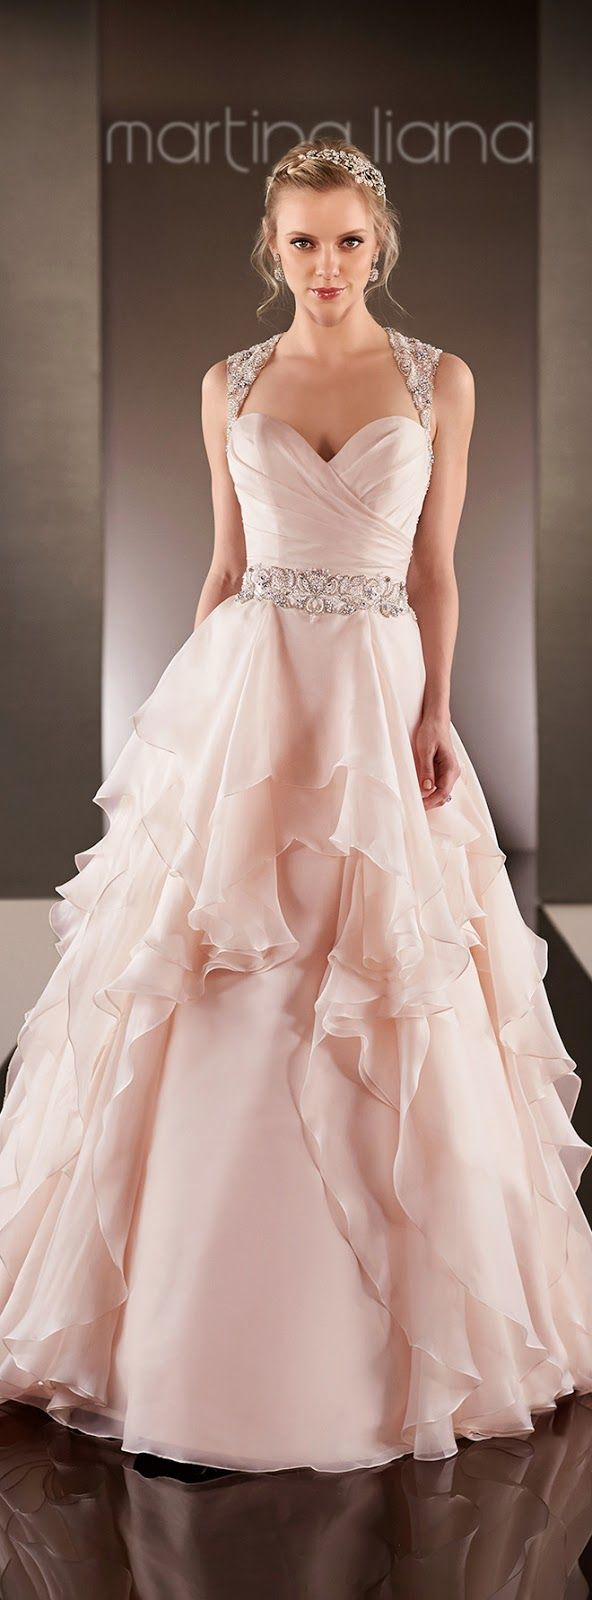 Martina Liana Spring 2015 Bridal Collection | Damas de honor rosas ...